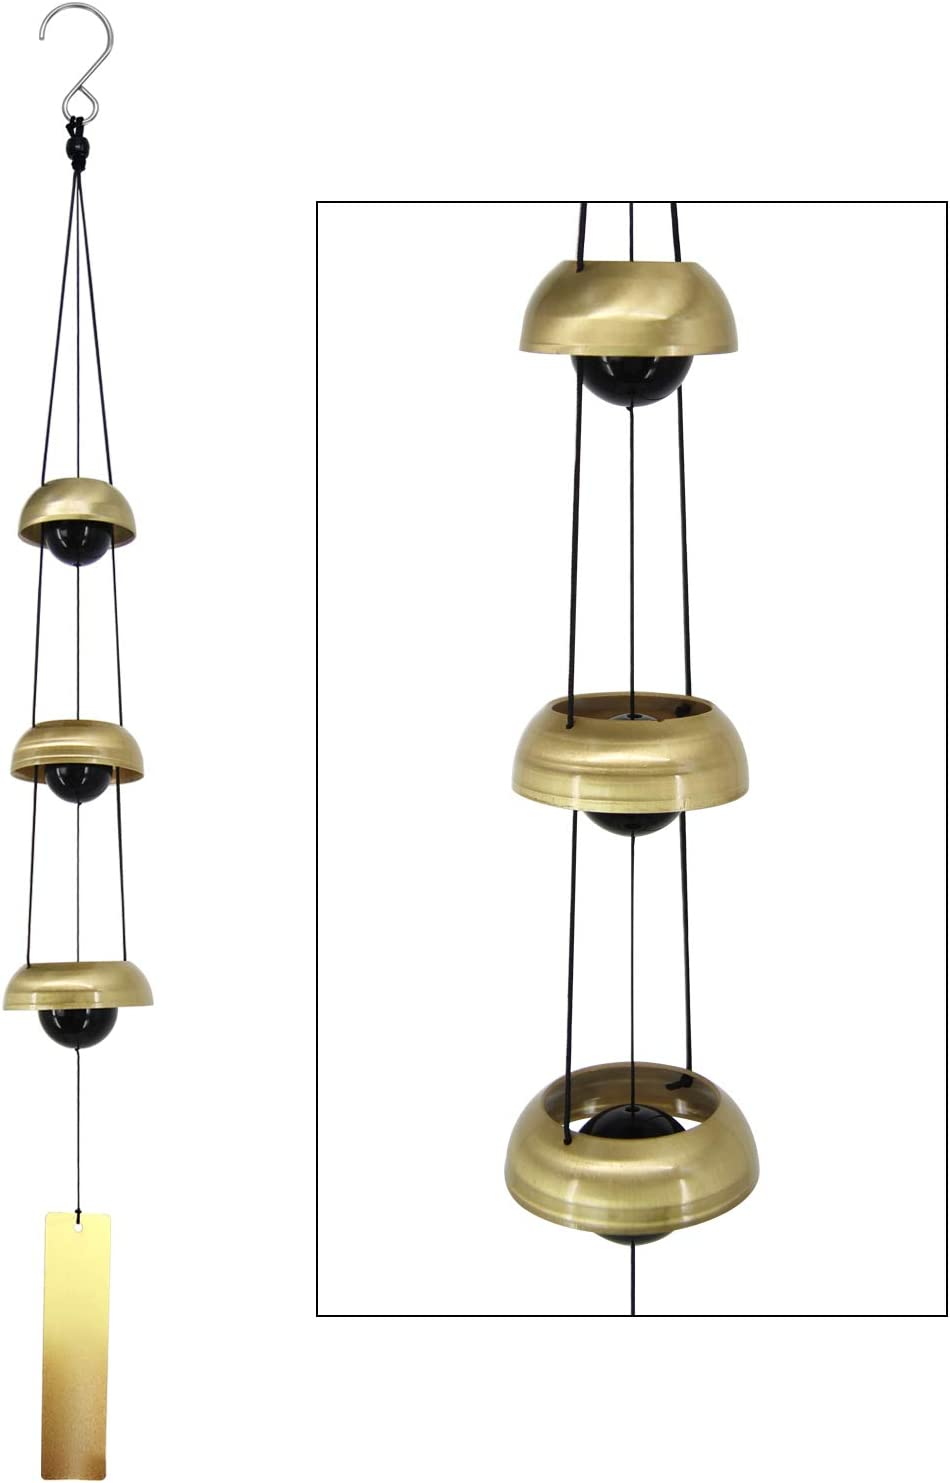 ASTARIN Copper Wind Chimes, Temple Wind Chime with 3 Bells, Feng Shui Wind Chimes for Home Yard Outdoor Decoration, A Great Memorial Wind Chime for Someone who Loves Peace